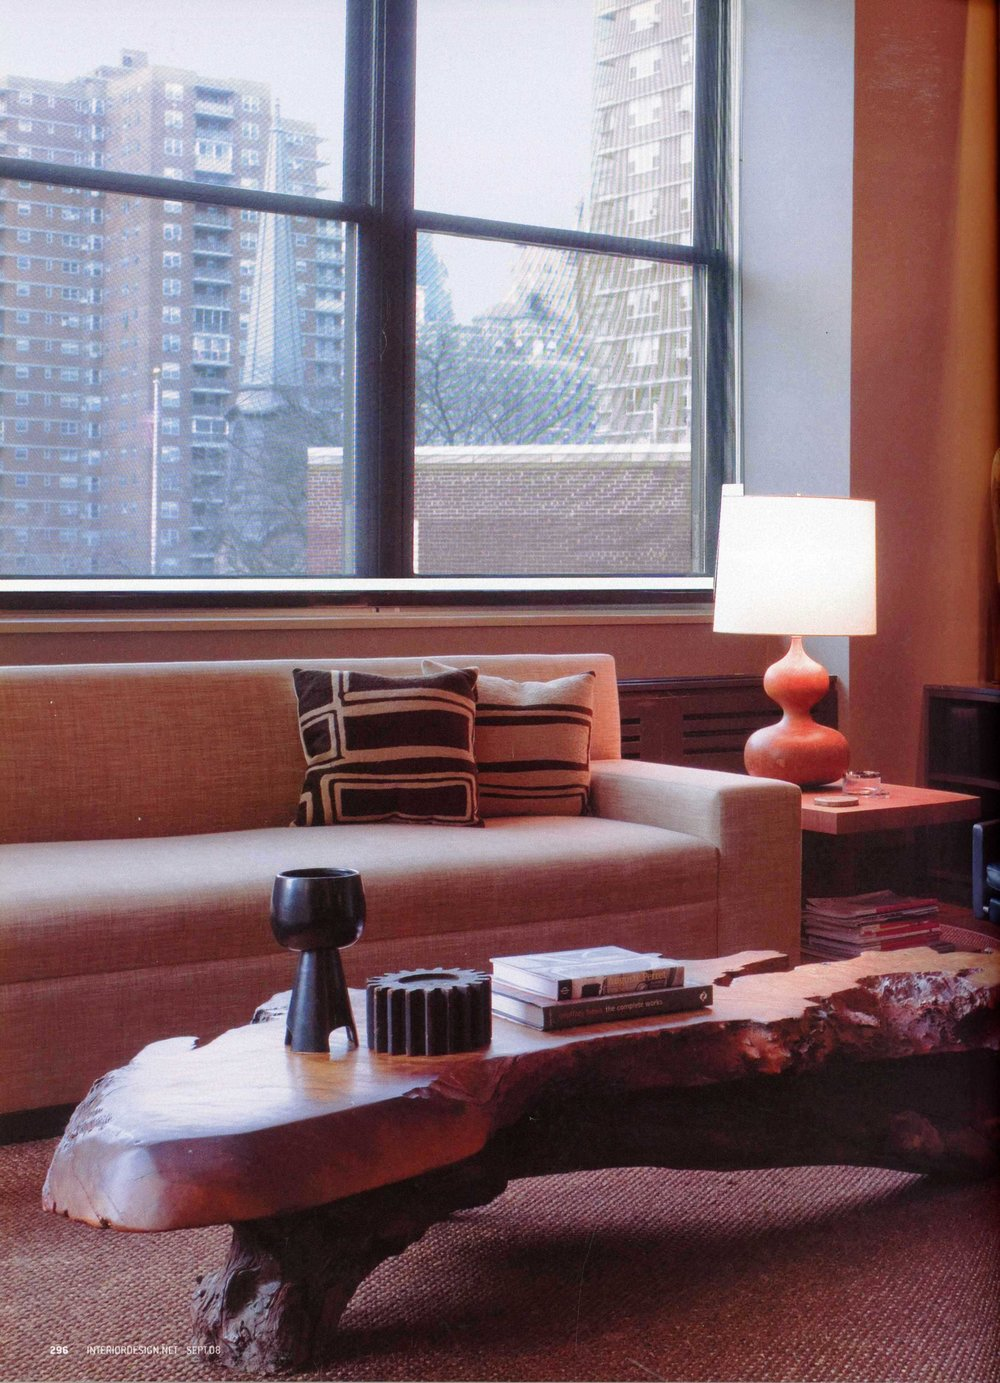 Interior Design_Sept 08_SS Apt_Full Article_Page_2.jpg